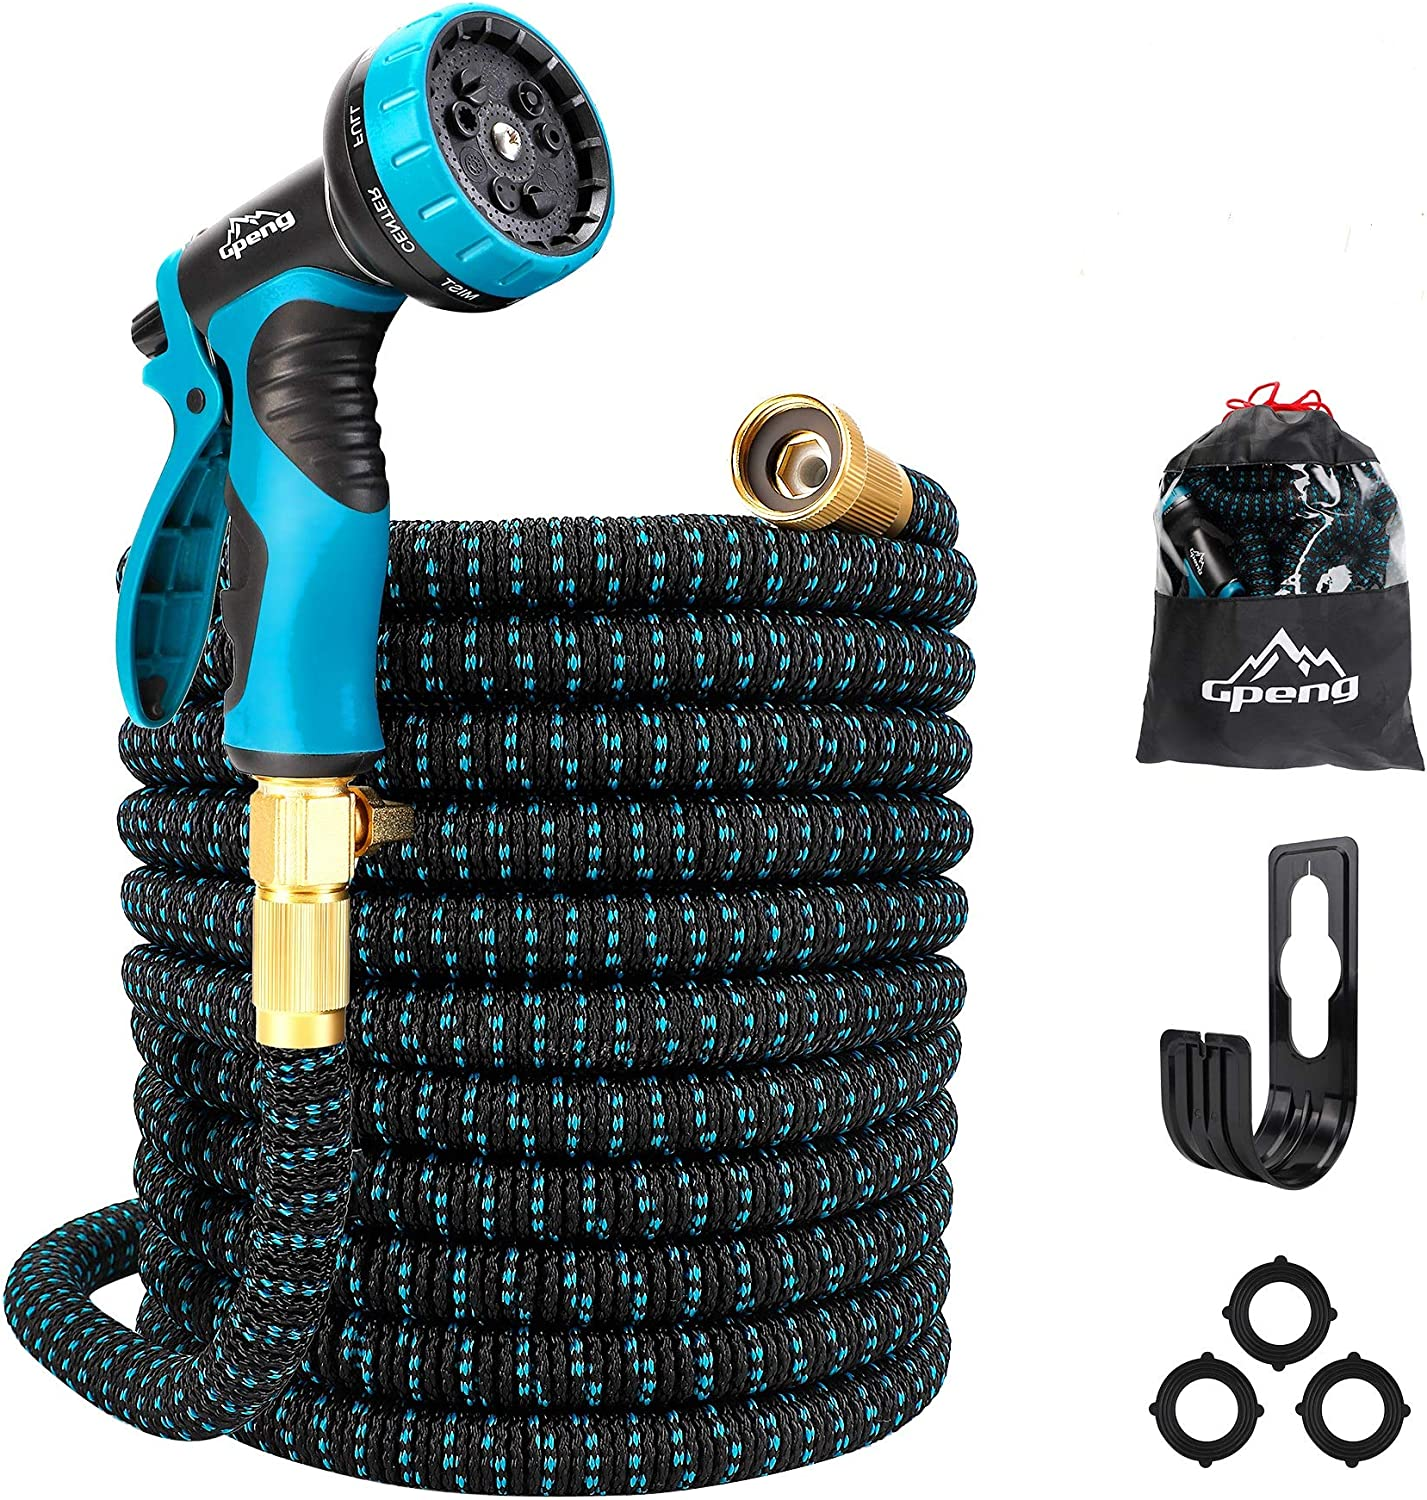 """Gpeng 100ft Expandable Garden Hose, Water Collapsible Hose with 9 Function Spray Nozzle, Durable 3-Layers Latex Core with 3/4"""" Solid Brass Fittings, Lightweight Expanding Flexible Hose"""